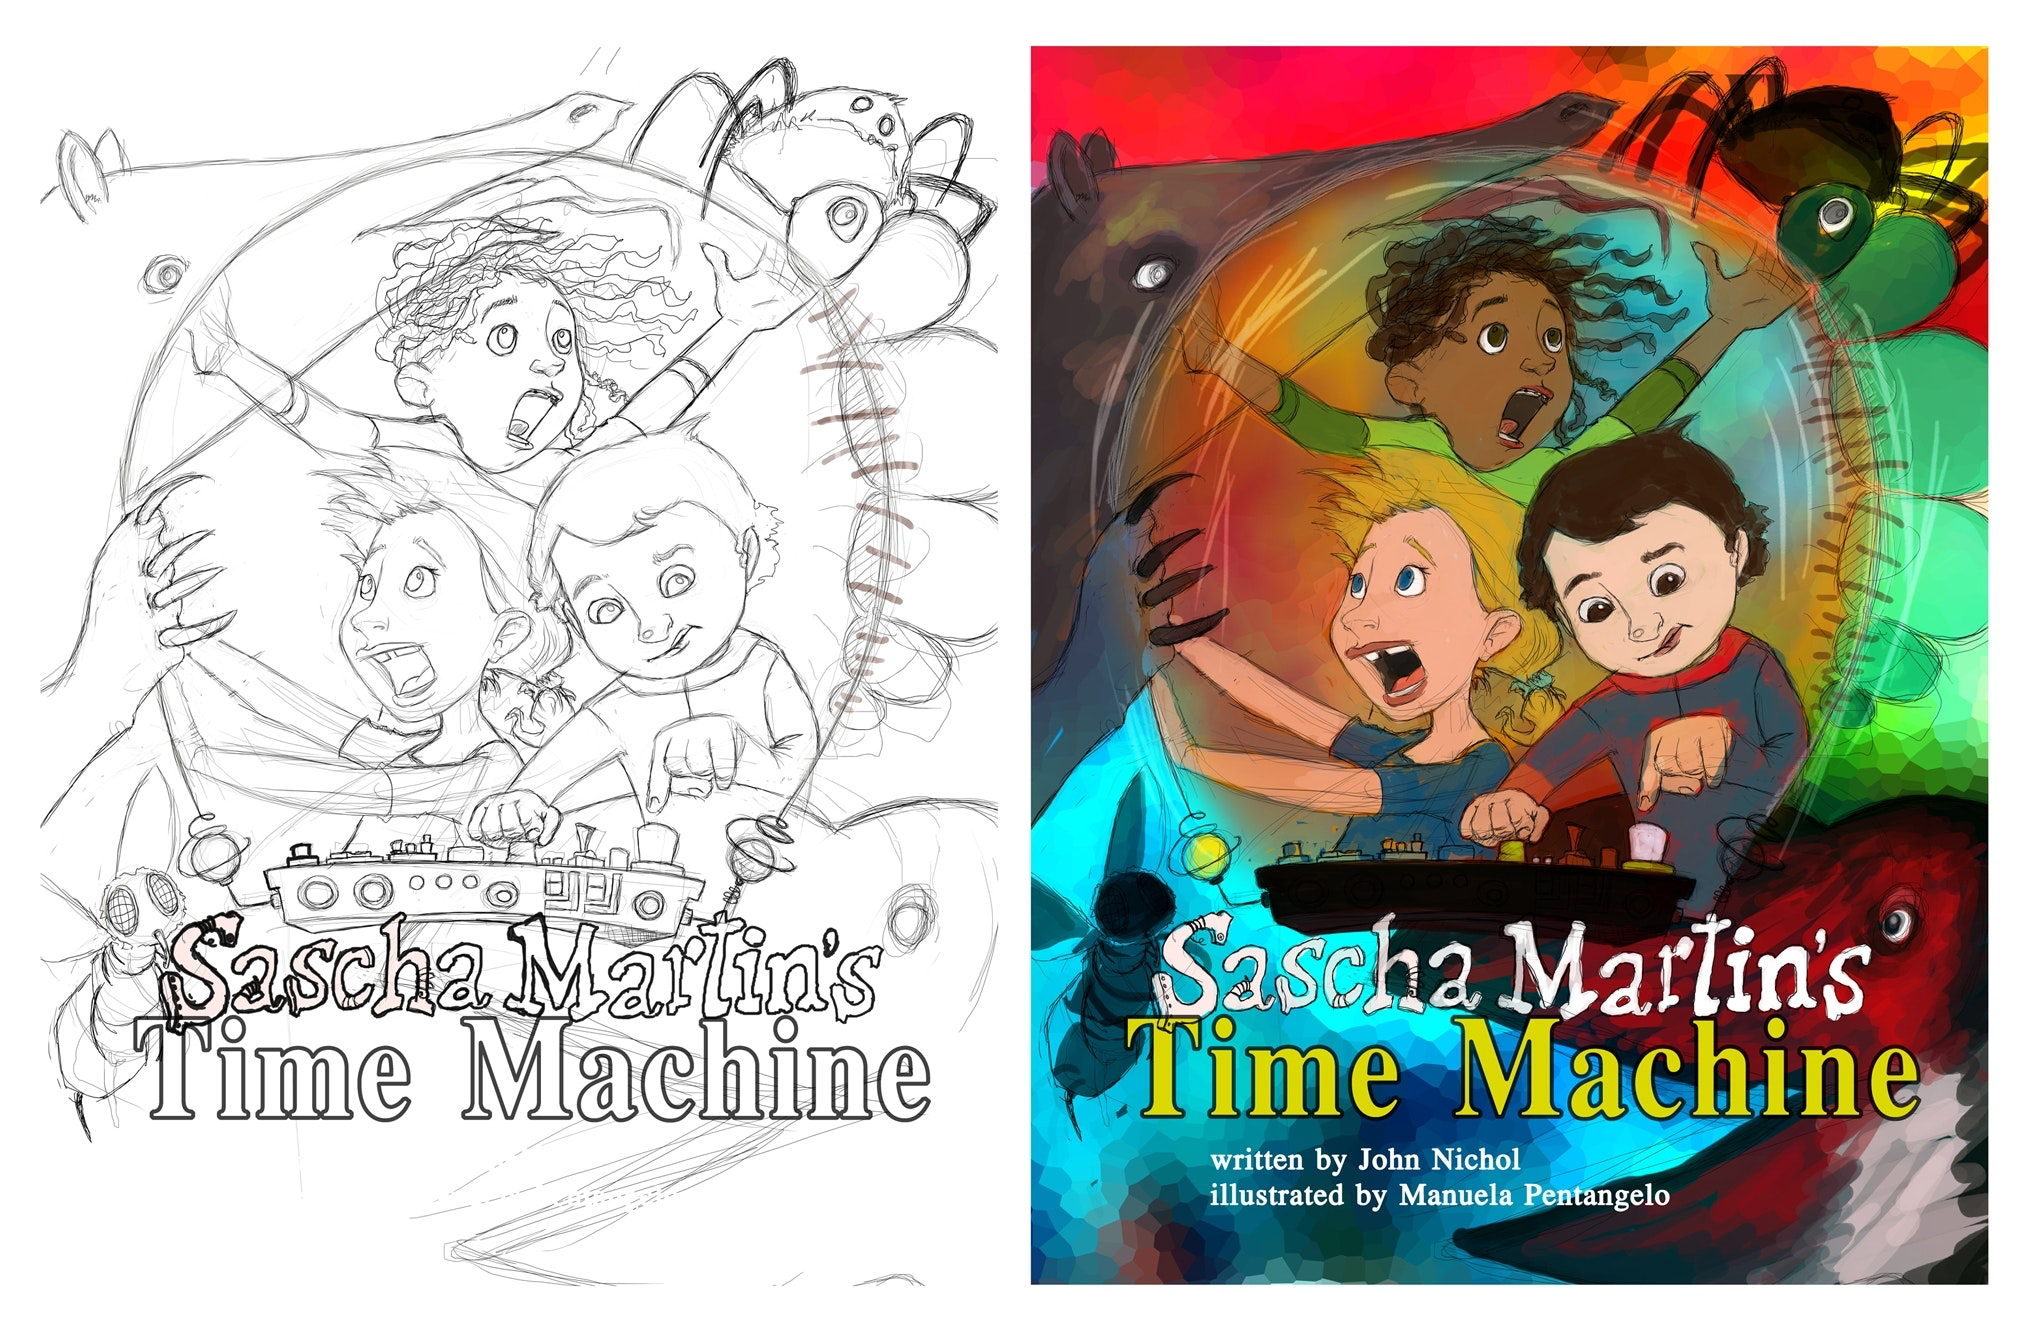 sascha-martins-time-machine-cover-development